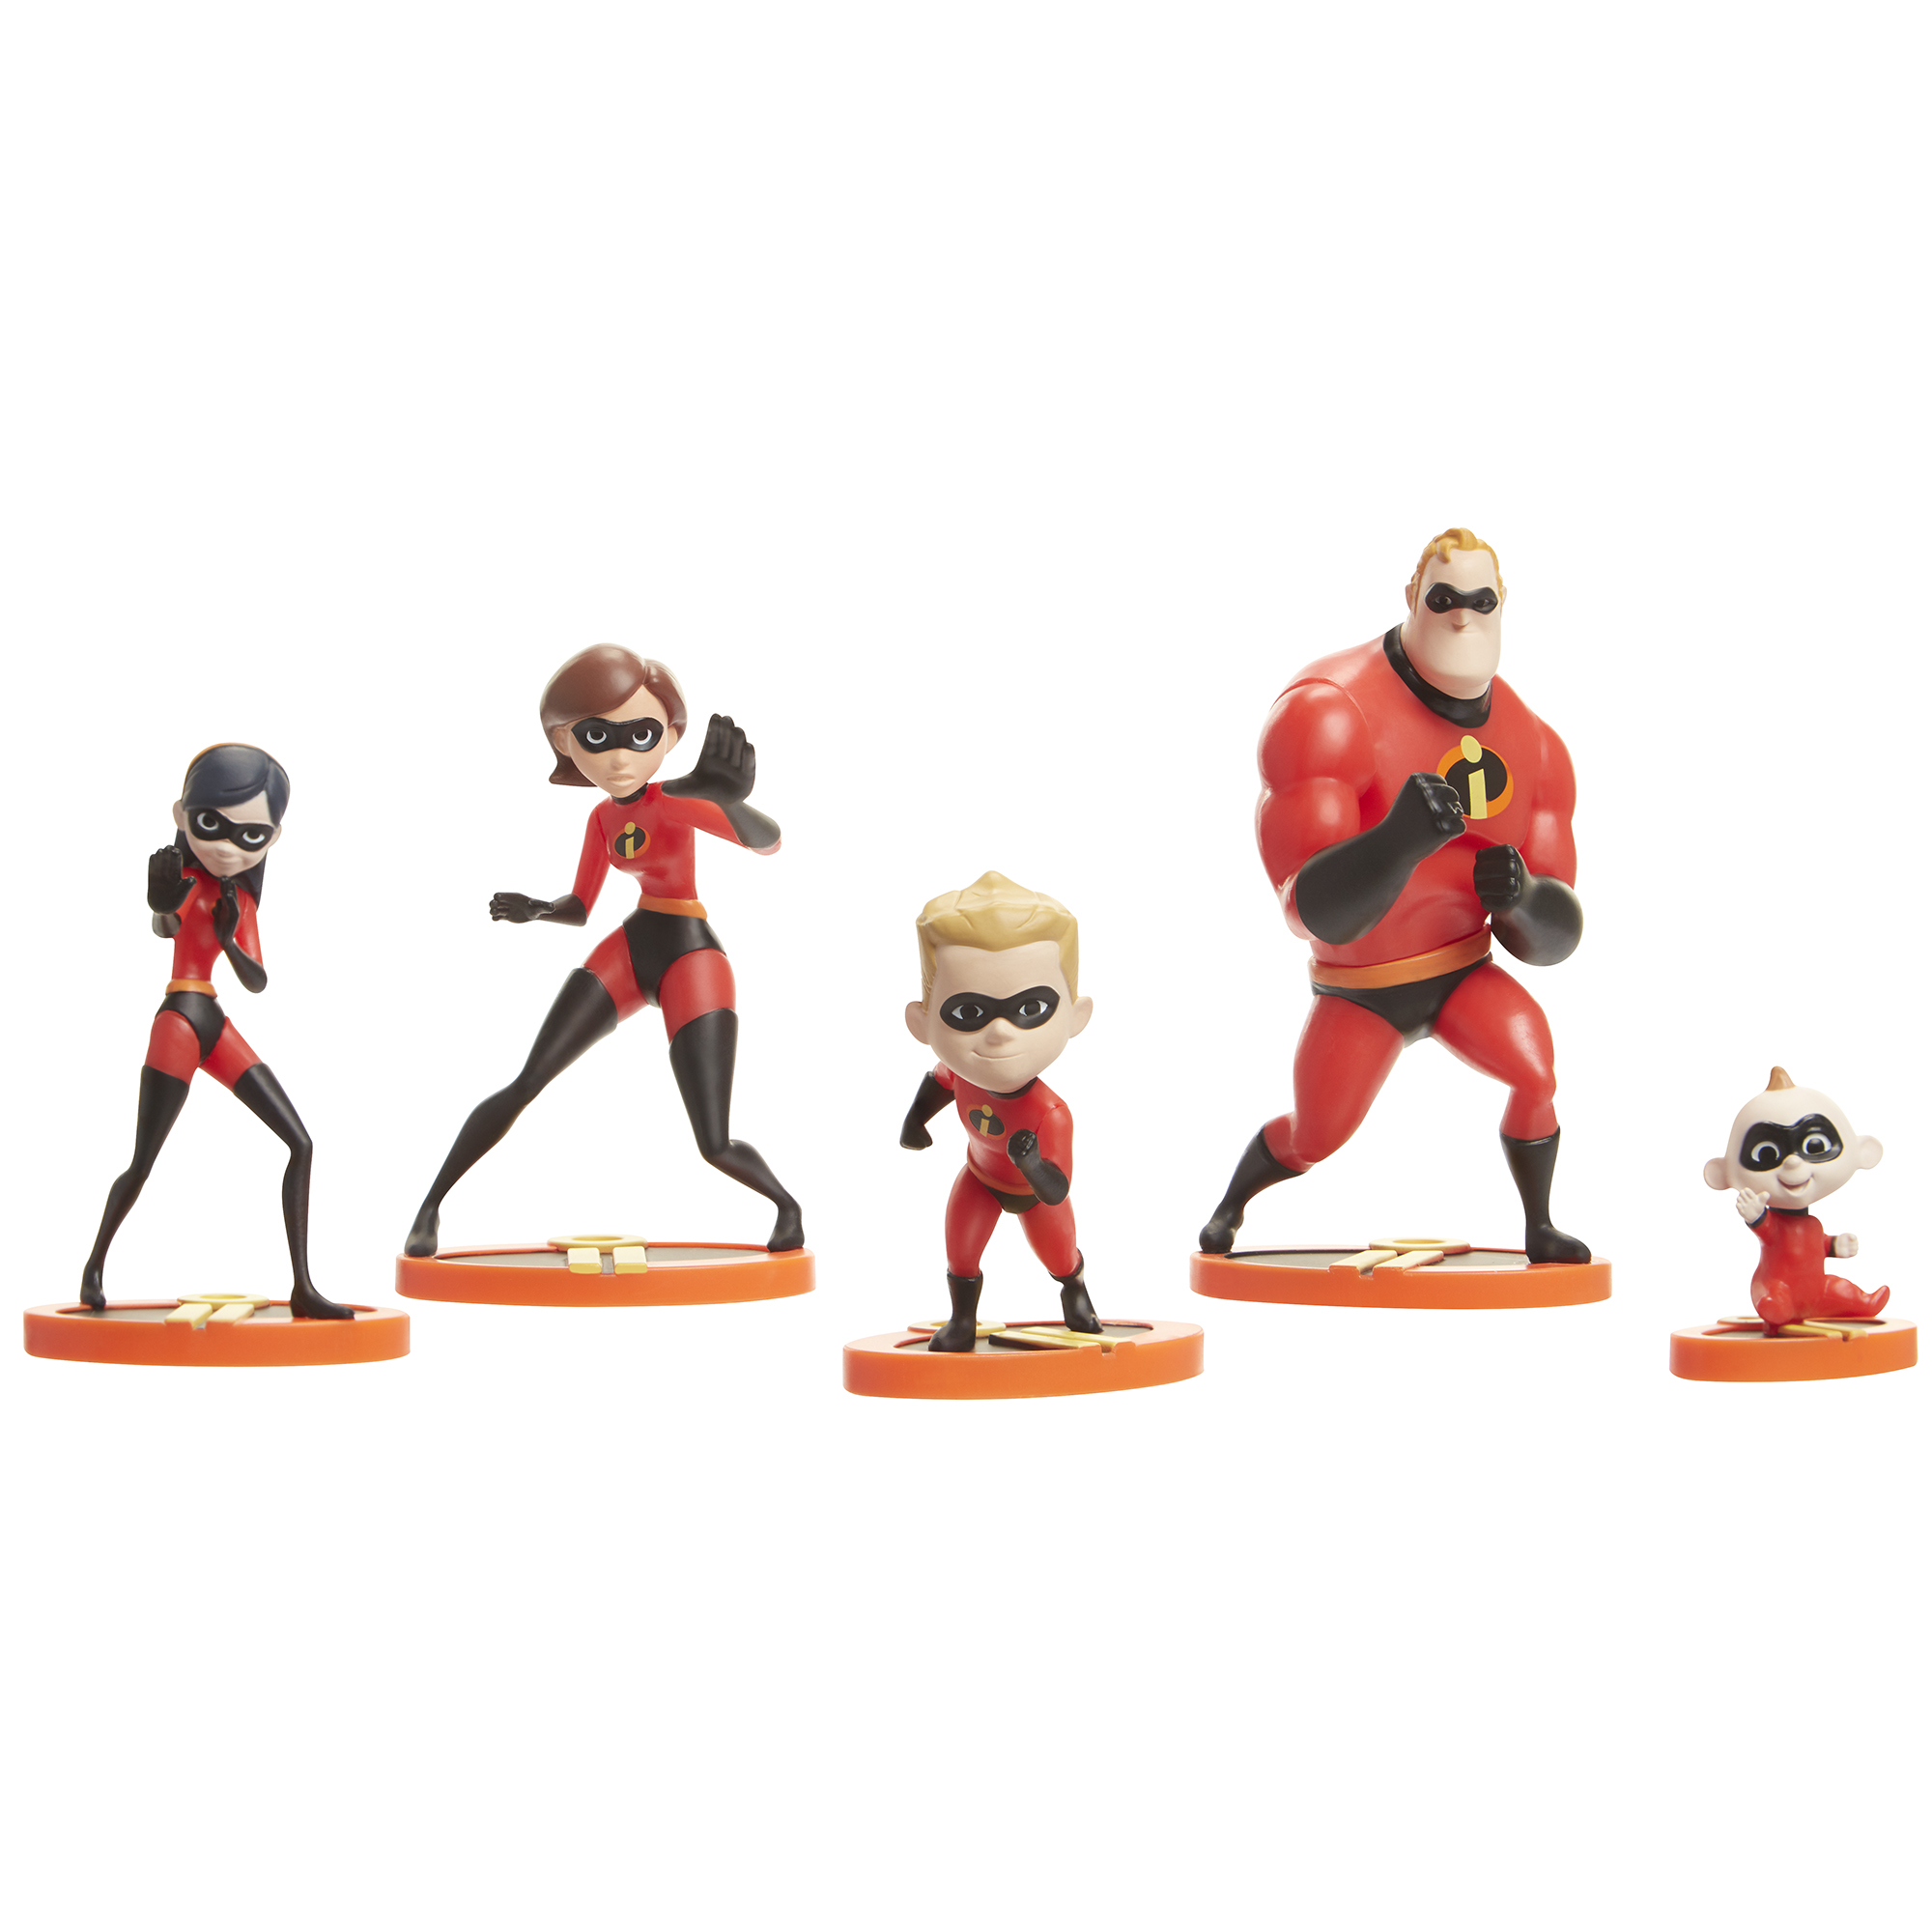 Incredibles 2 Family Figurine Set